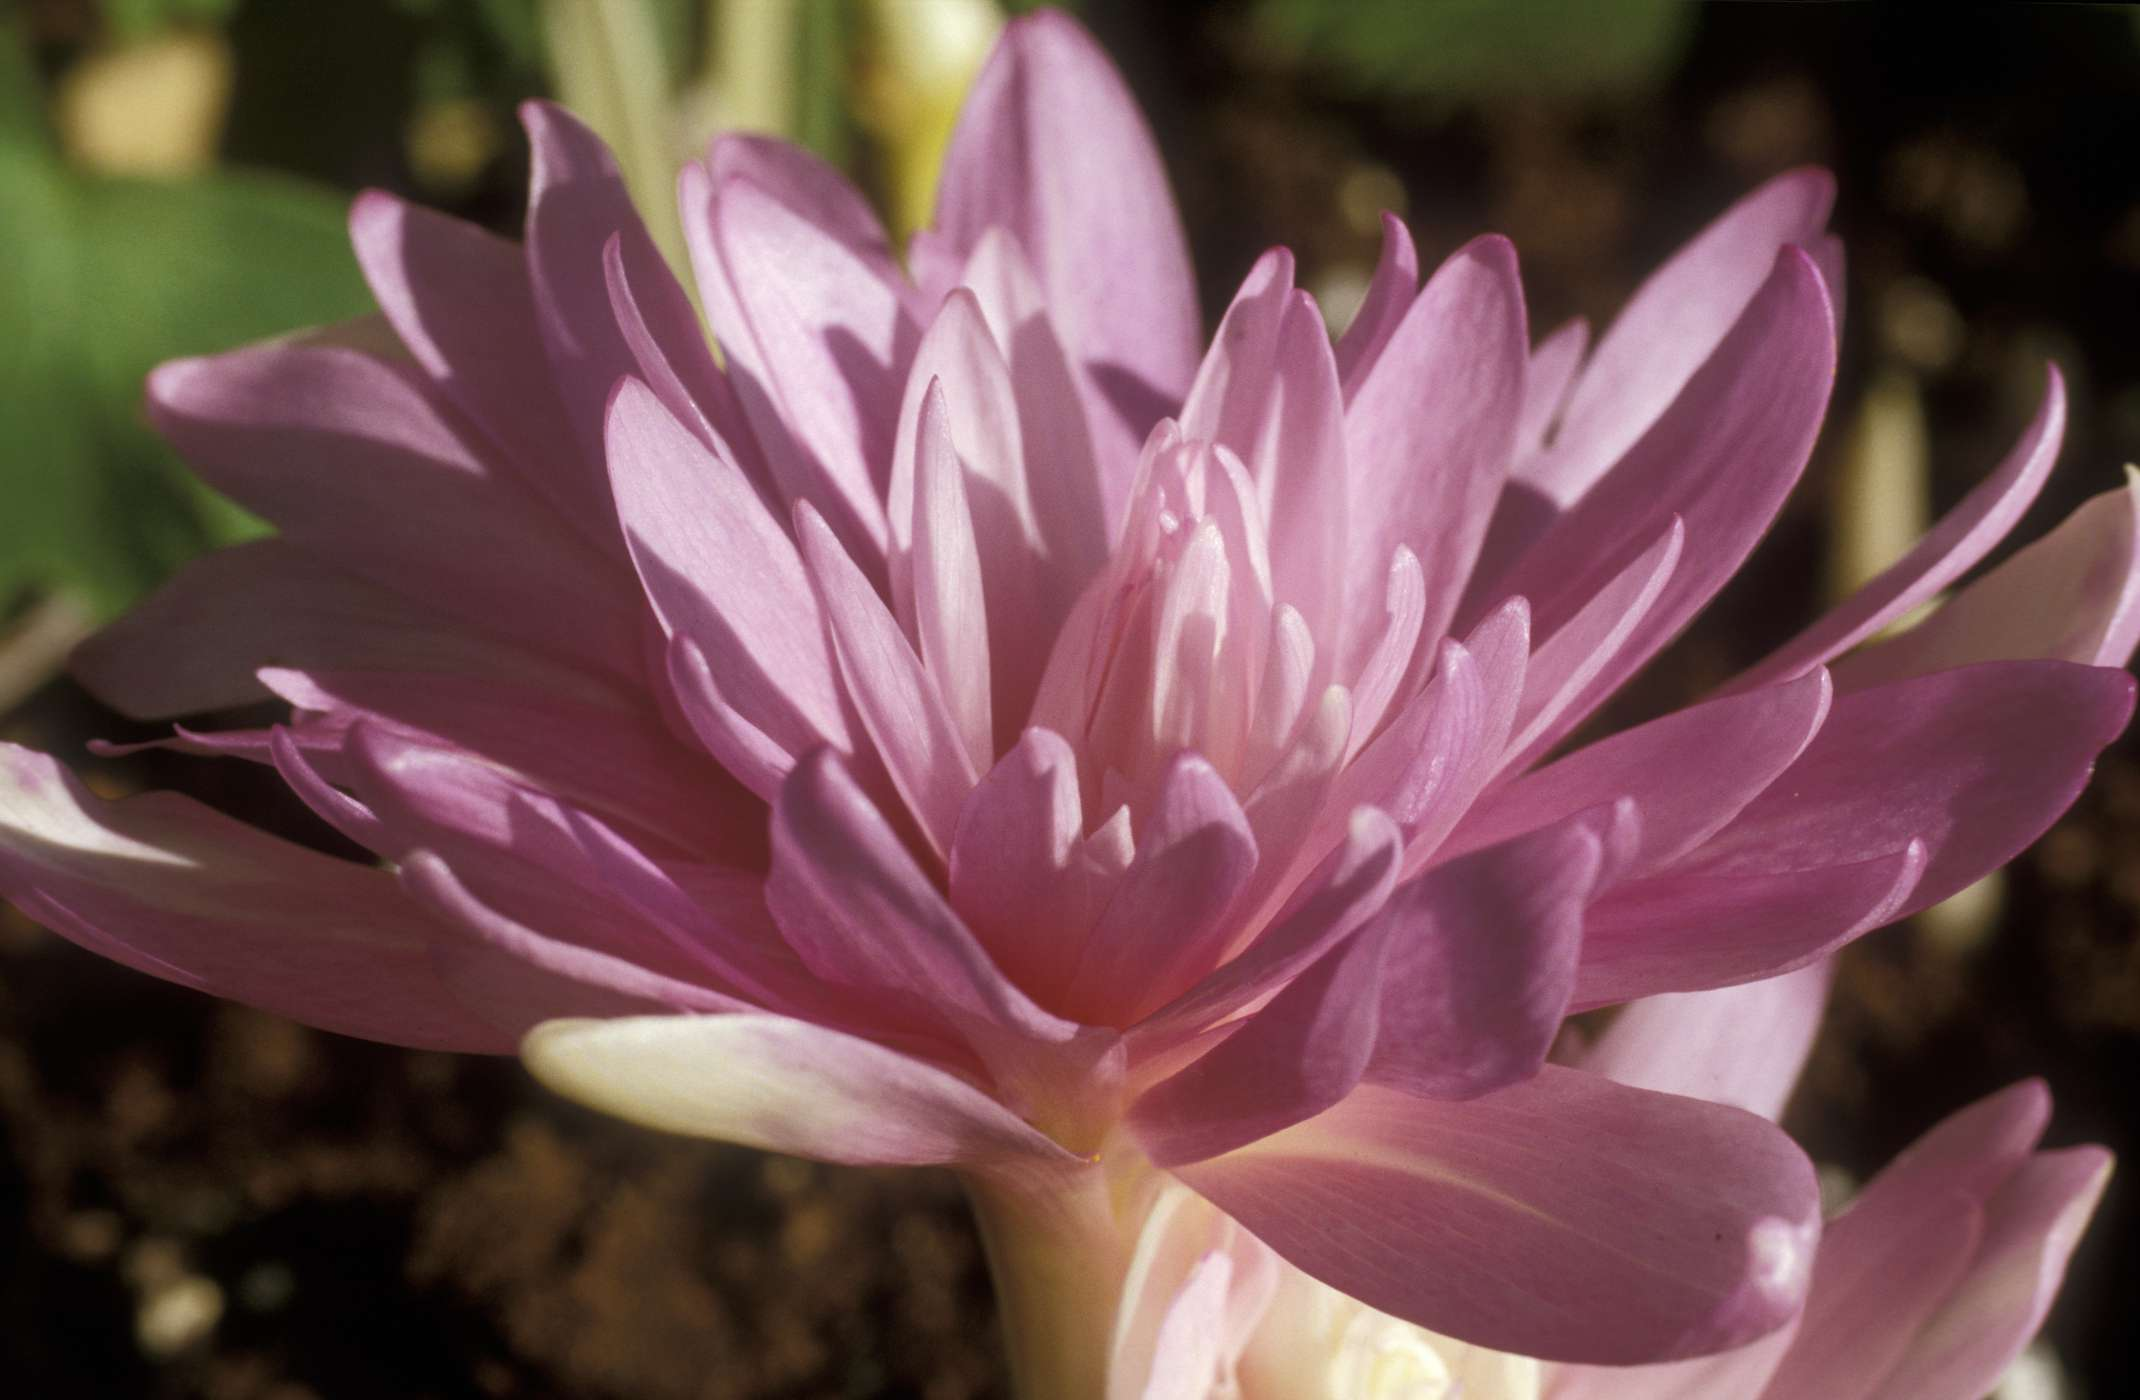 How to Grow and Care for Autumn Crocus